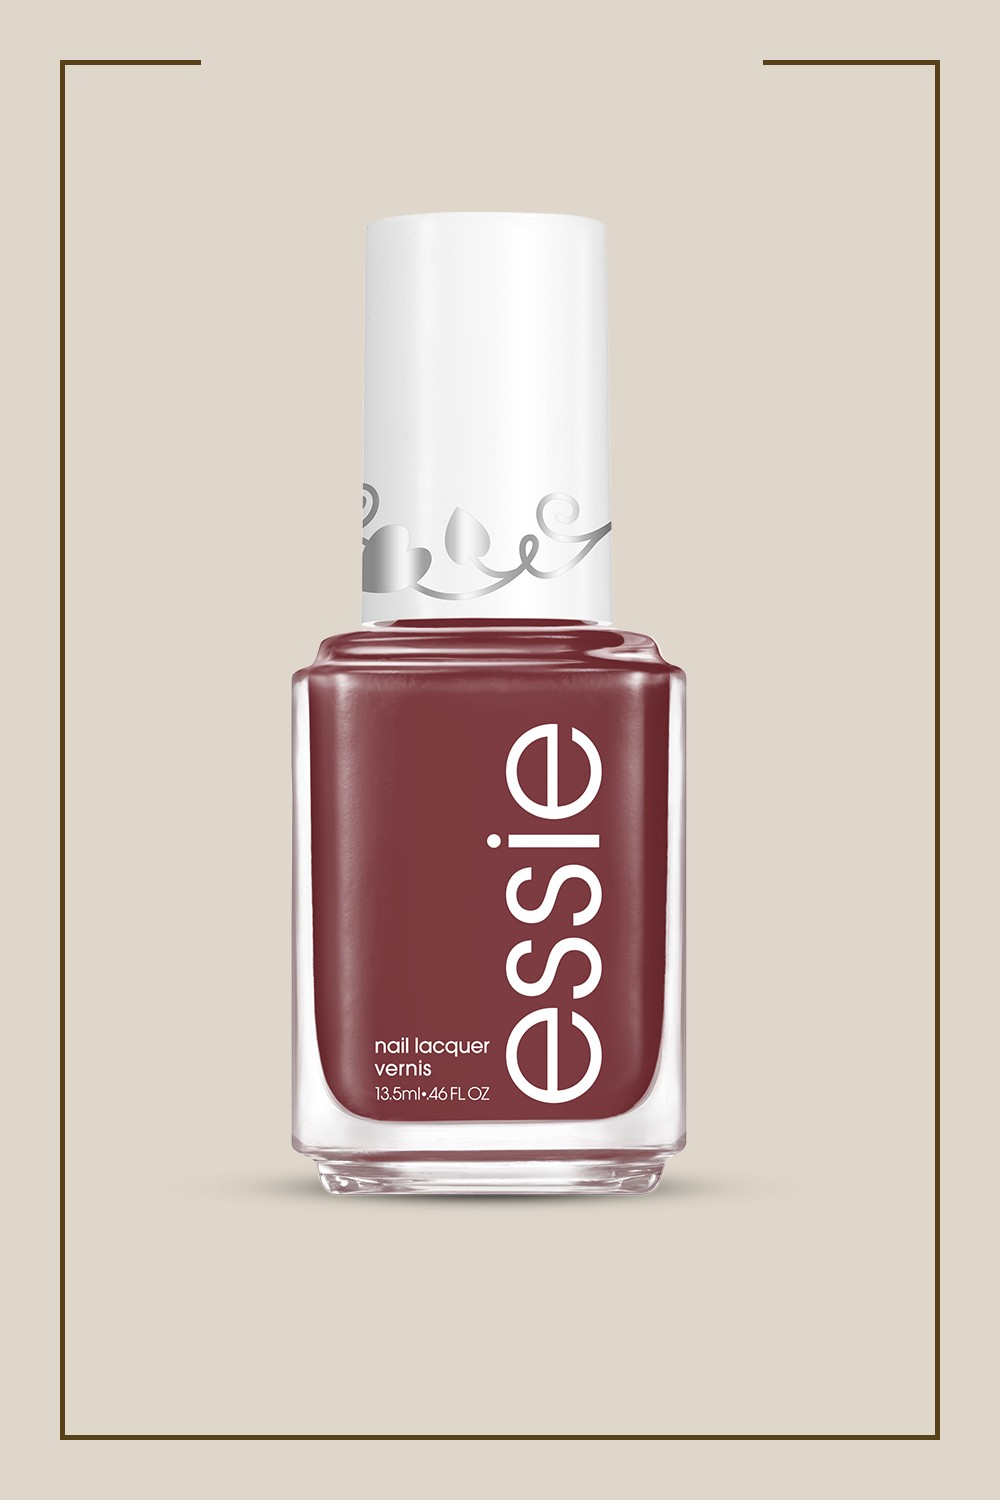 essie Limited Edition Beleaf In Yourself Nail Polish Collection - Rooting For You - 0.46 fl oz